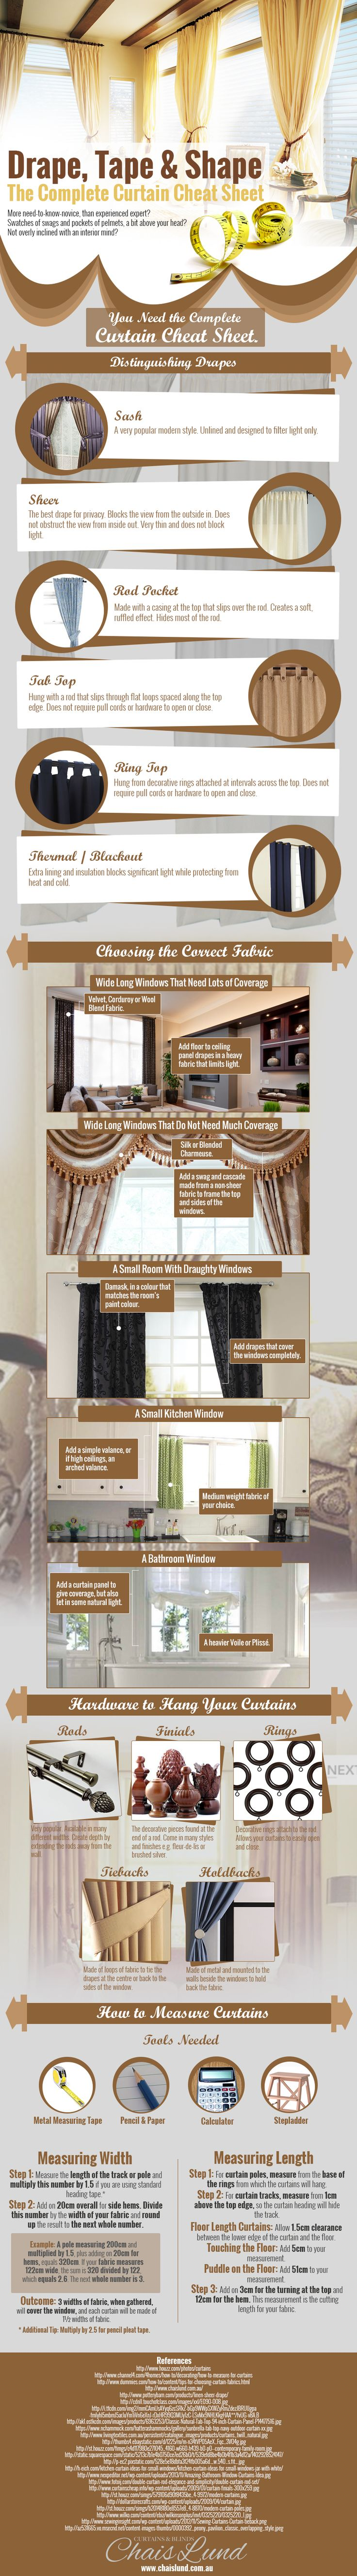 The Complete Curtain Cheat Sheet Infographic - Tipsaholic